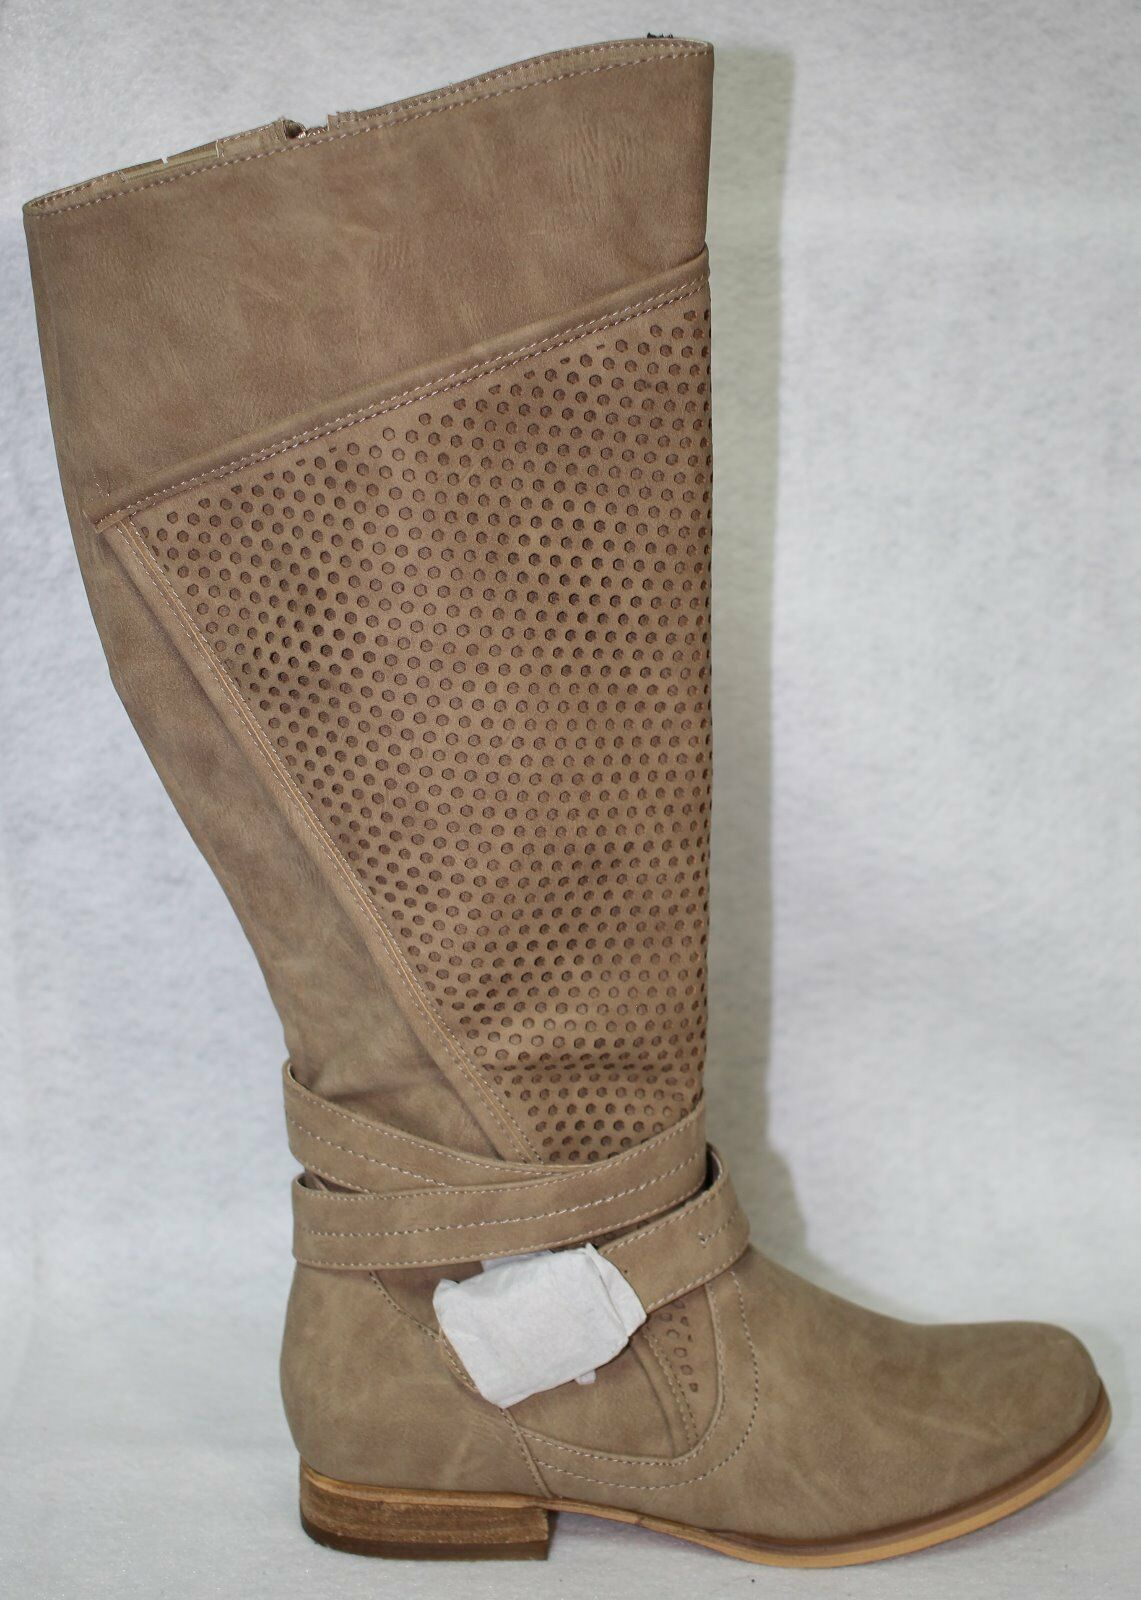 Not Rated Wind Zone Cream Round Toe Synthetic Knee High Stiefel US schuhe Größe 8.5 M